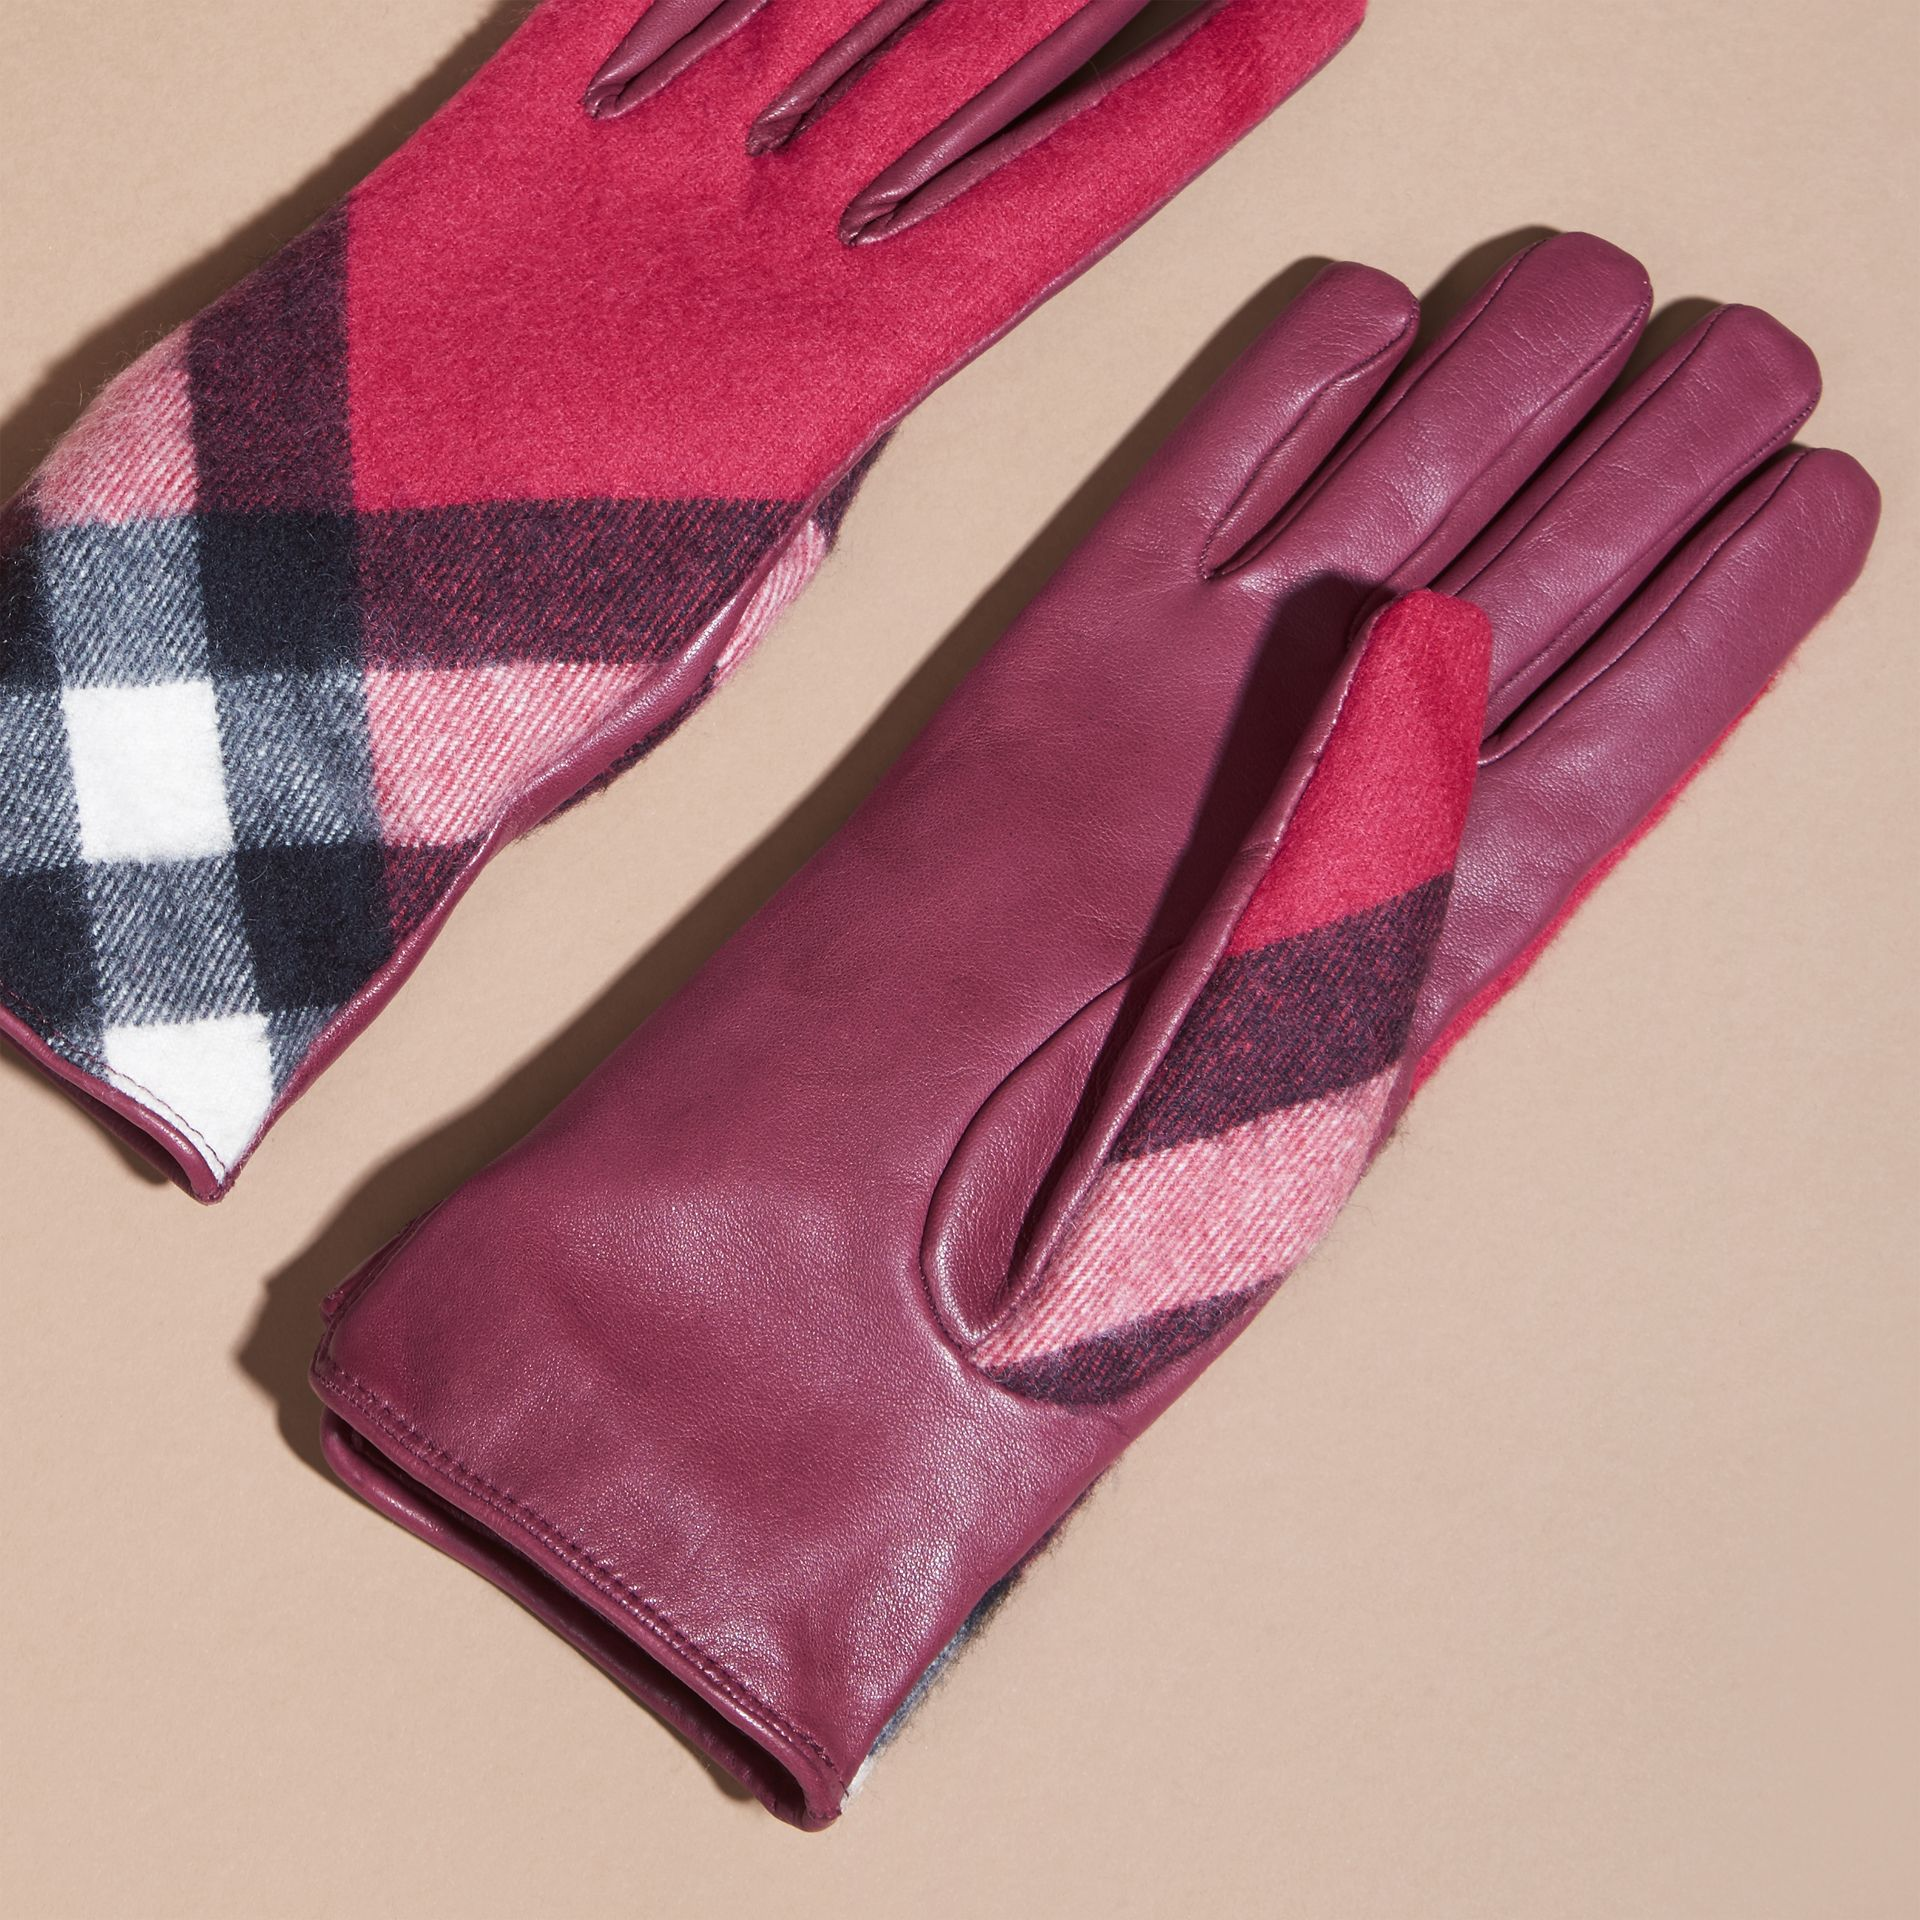 Leather and Check Cashmere Gloves in Fuchsia - Women | Burberry - gallery image 3